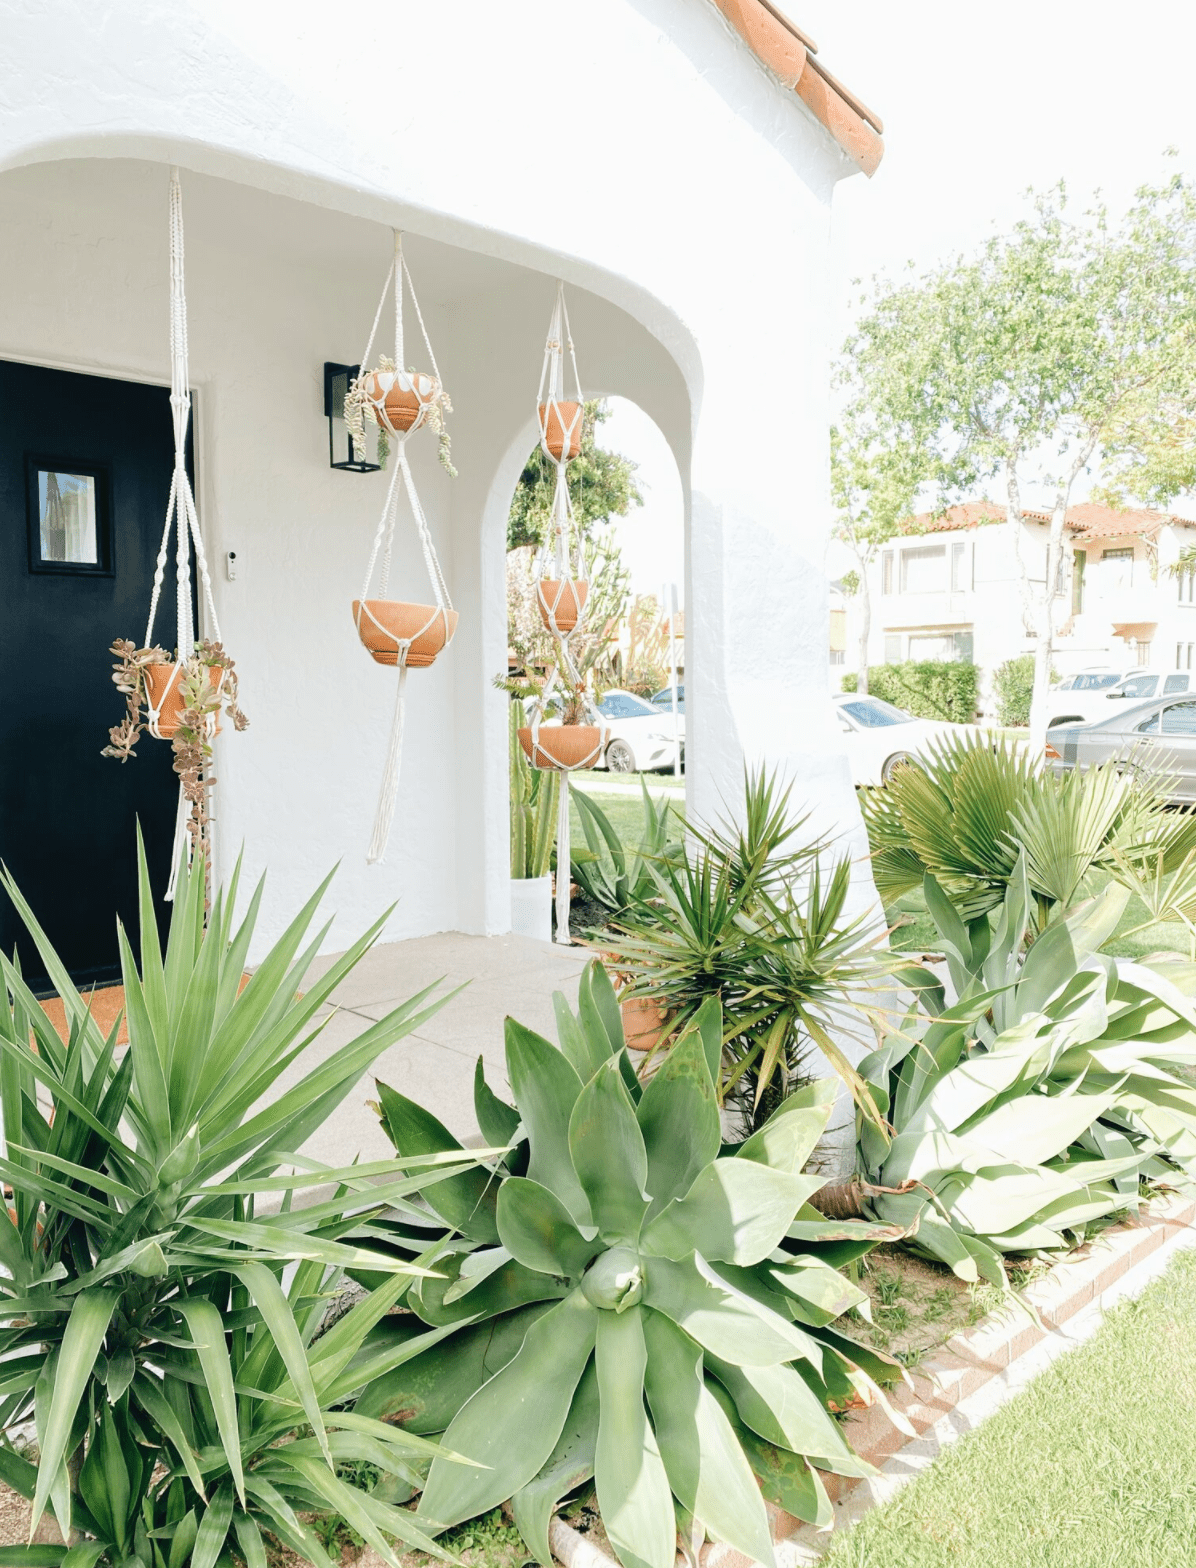 Desert inspired exterior with large leafy plants.